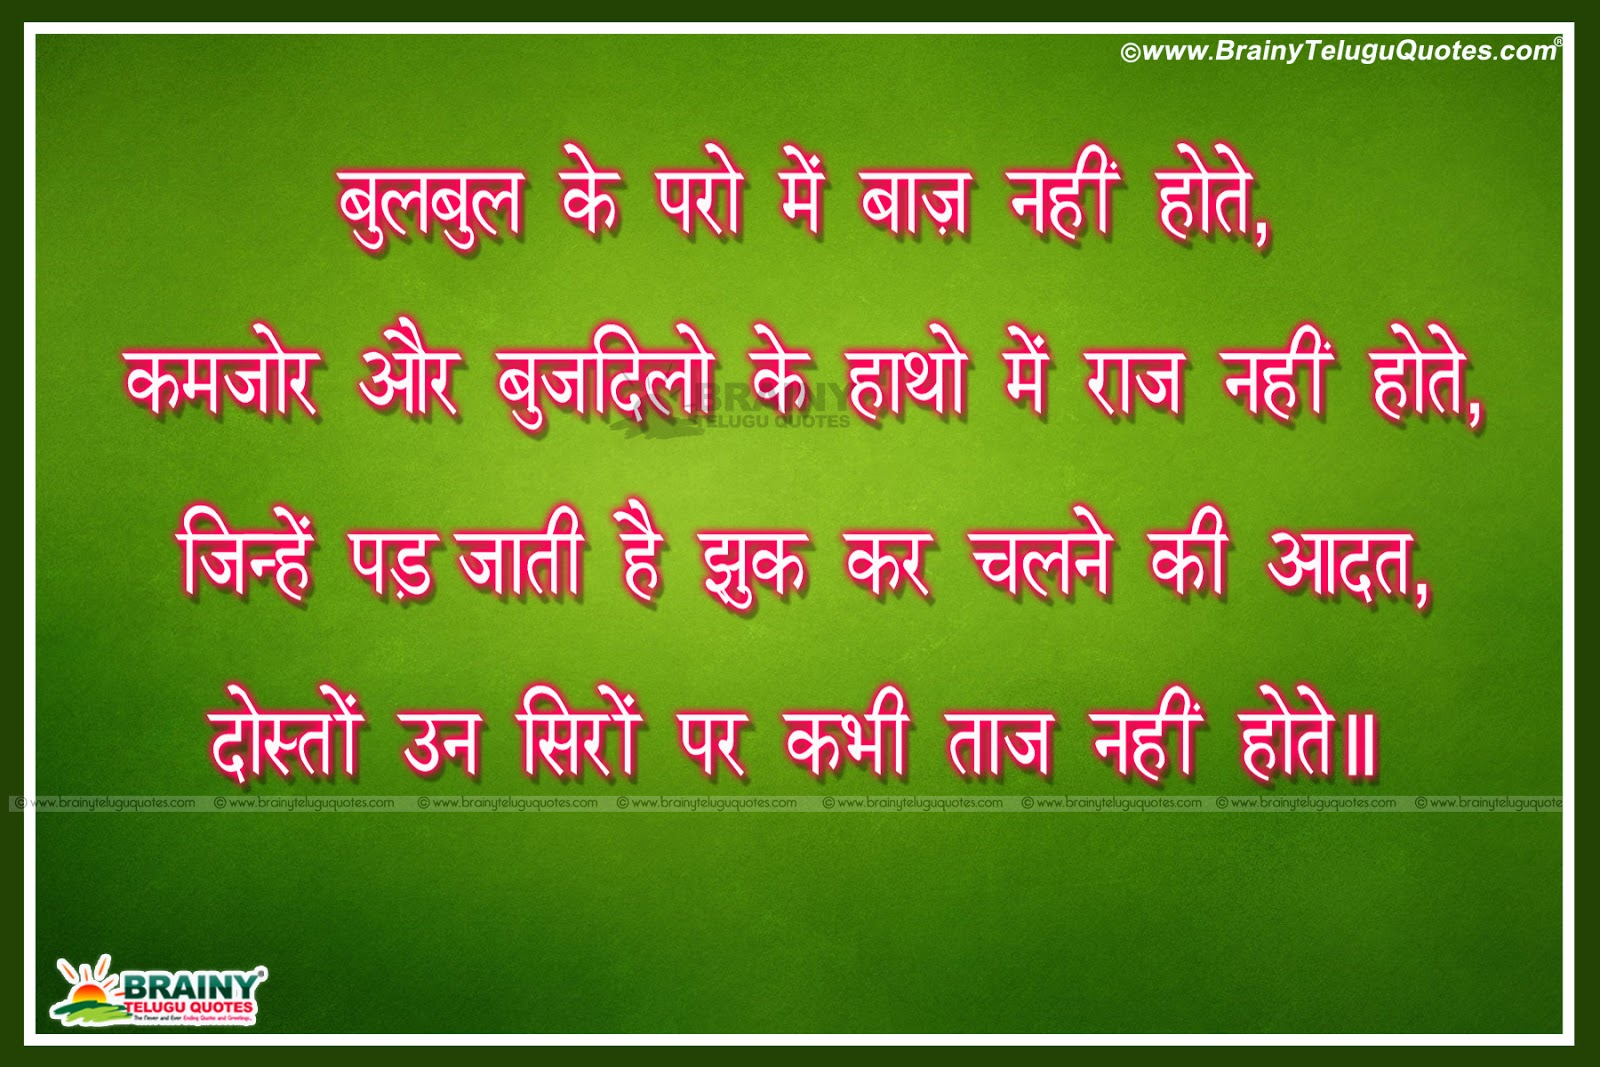 Recent Inspirational Quotes Swami Vivekananda Life Inspirational Quotes In Hindi Hd Wallpapers